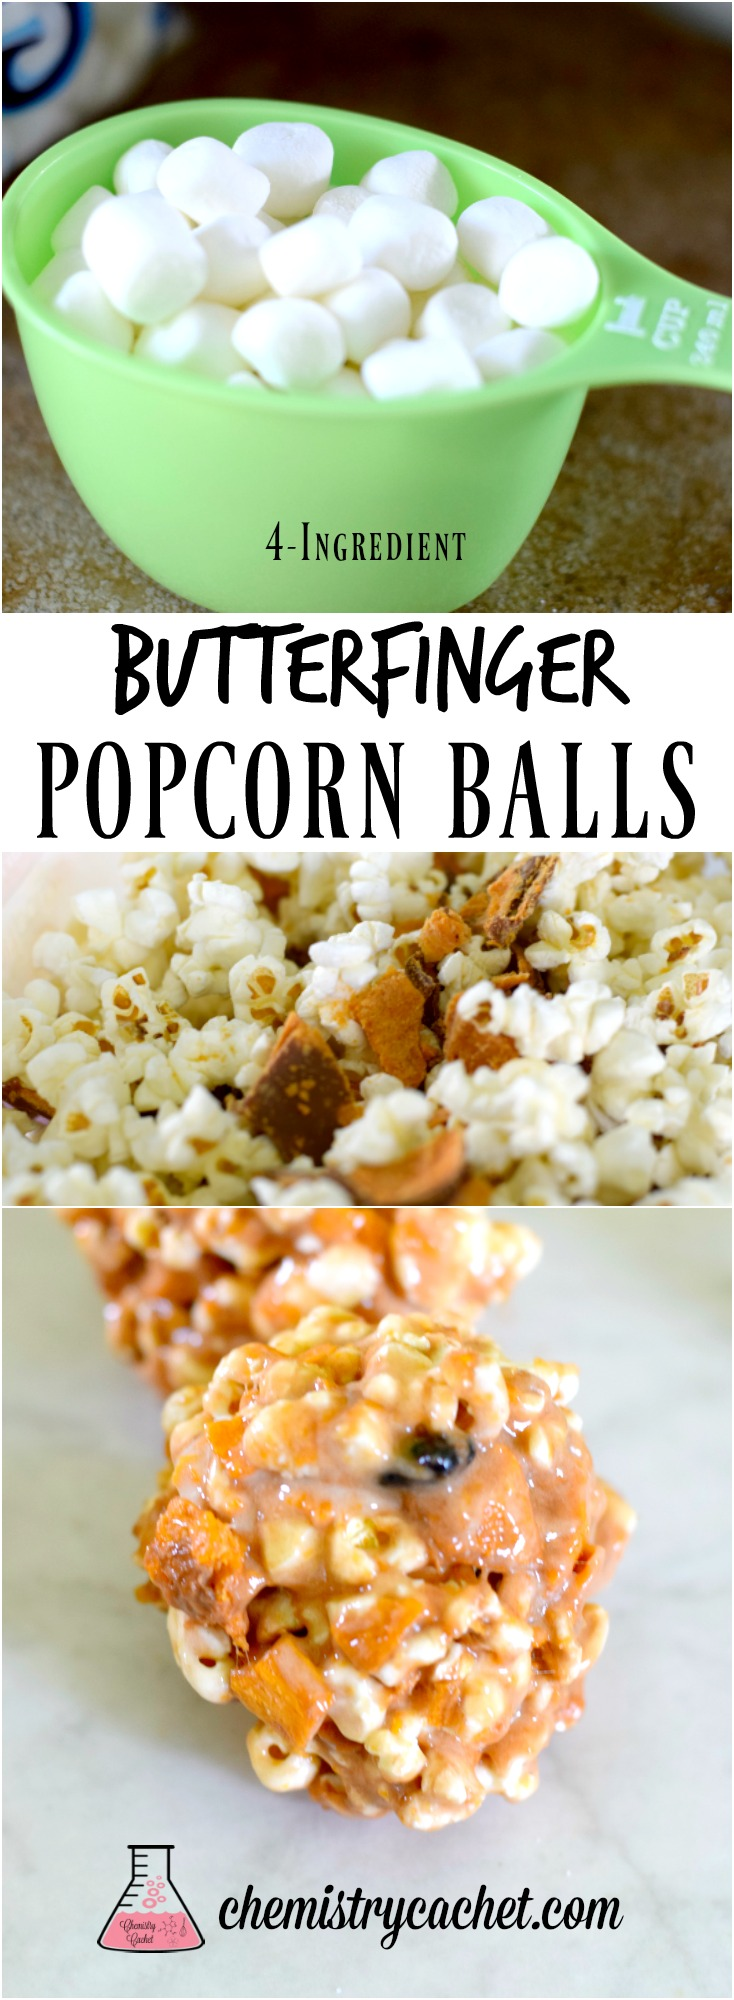 Pumpkin Spice Popcorn Balls. So easy and delicious! Plus a traditional butterfinger popcorn ball recipe that is perfect! See this dairy-free popcorn ball recipe on chemistrycachet.com